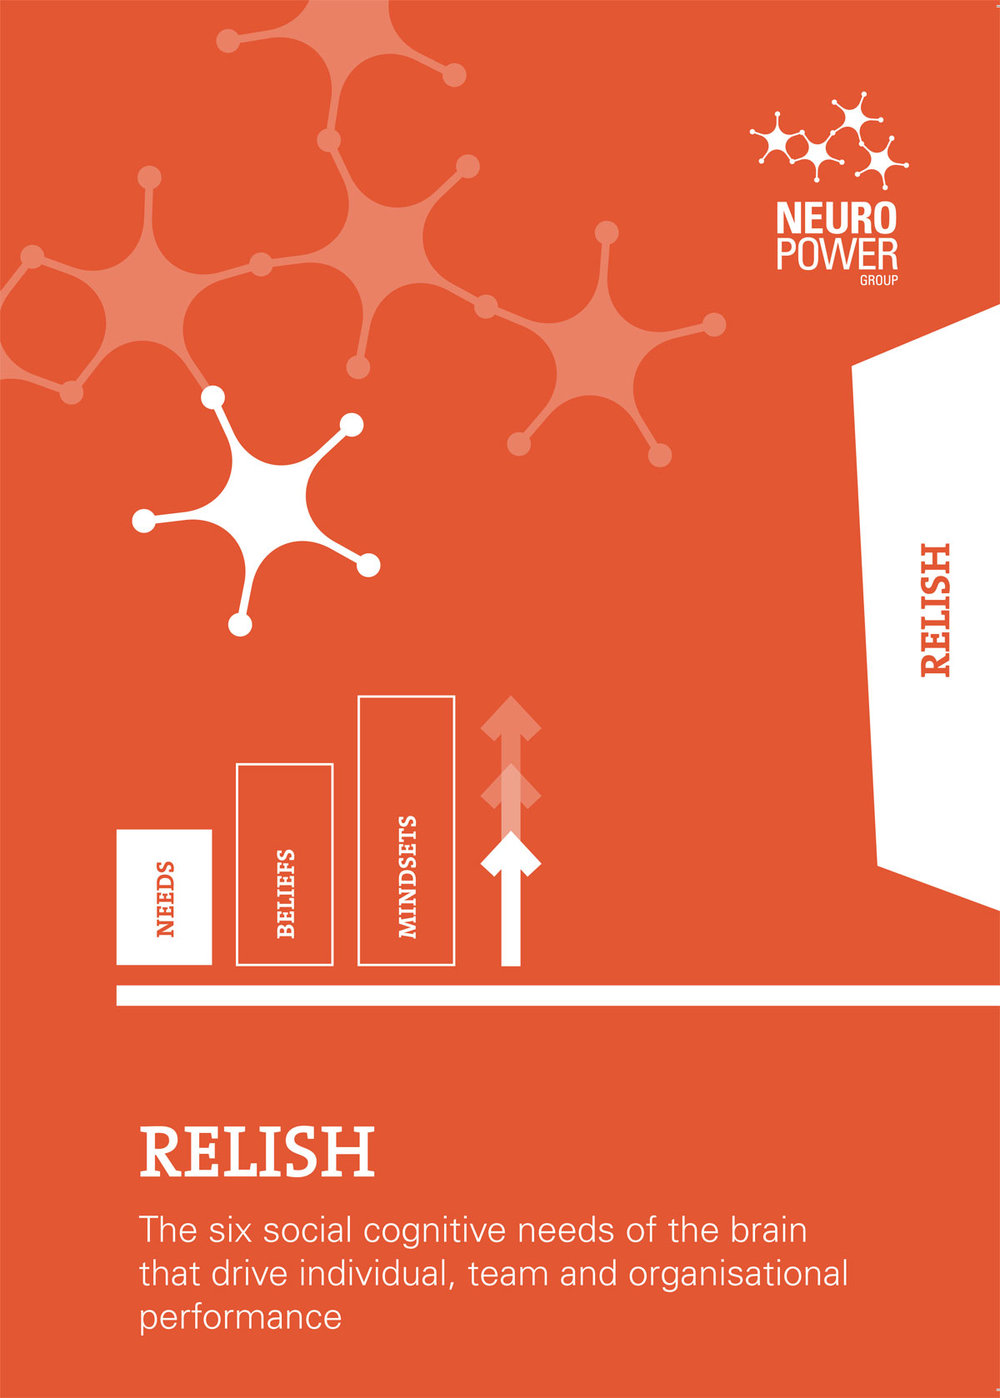 RELISH-Workbook-A4_PRINT-1.jpg